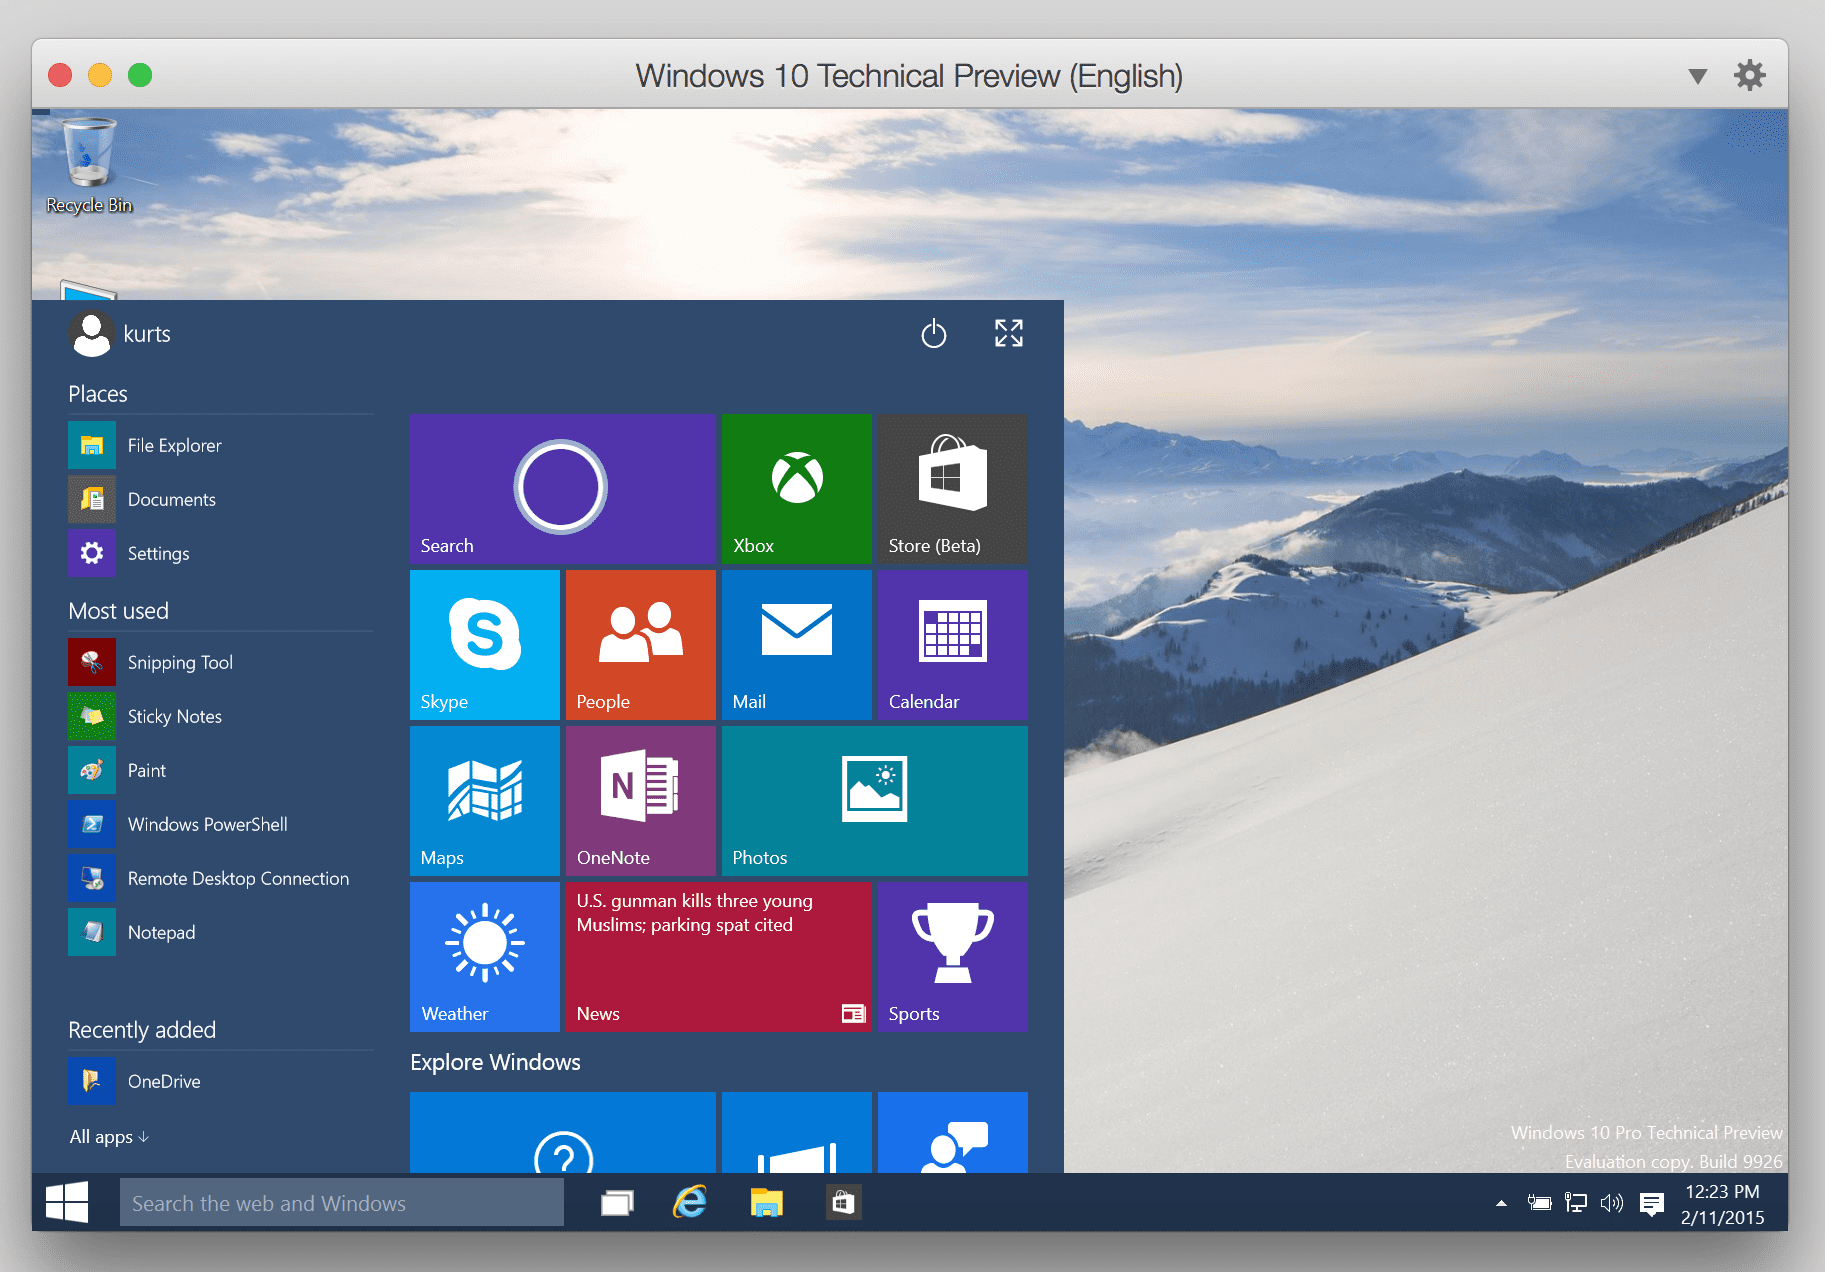 Installing the Windows 10 Tech Preview in Parallels Desktop